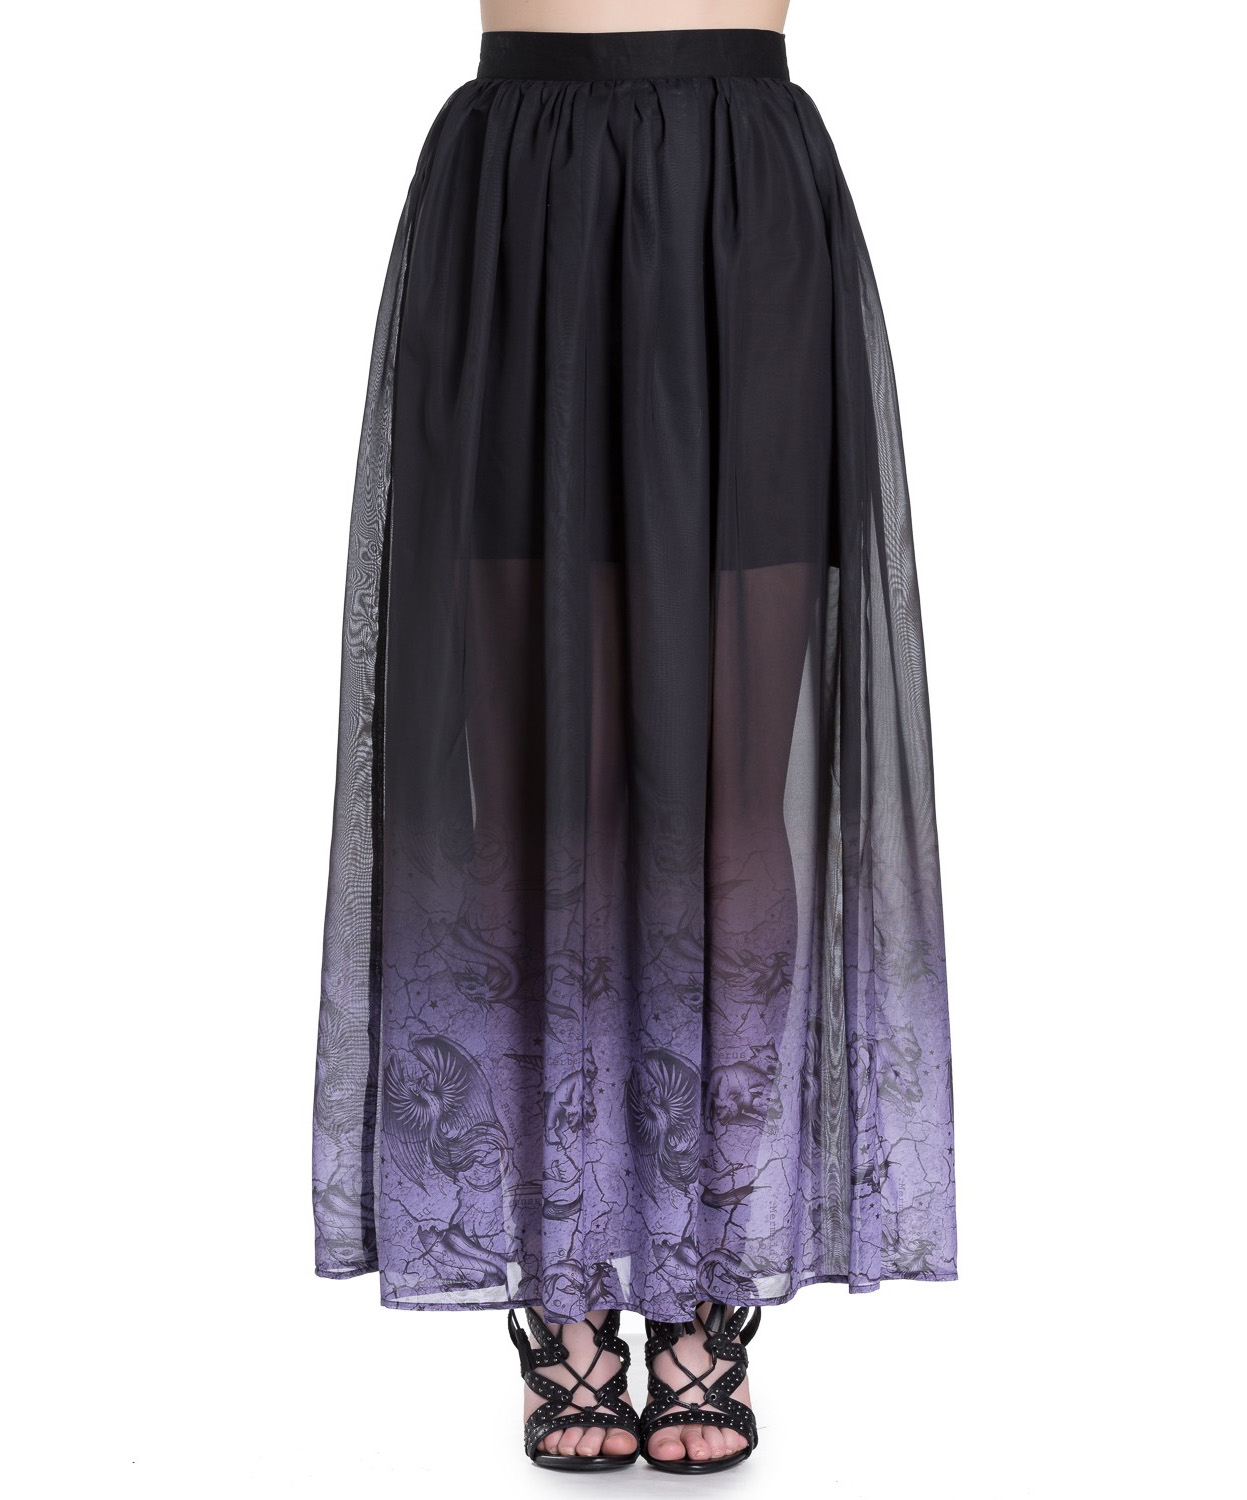 Hell-Bunny-Spin-Doctor-Goth-Purple-Mystical-EVADINE-Maxi-Skirt-All-Sizes thumbnail 11